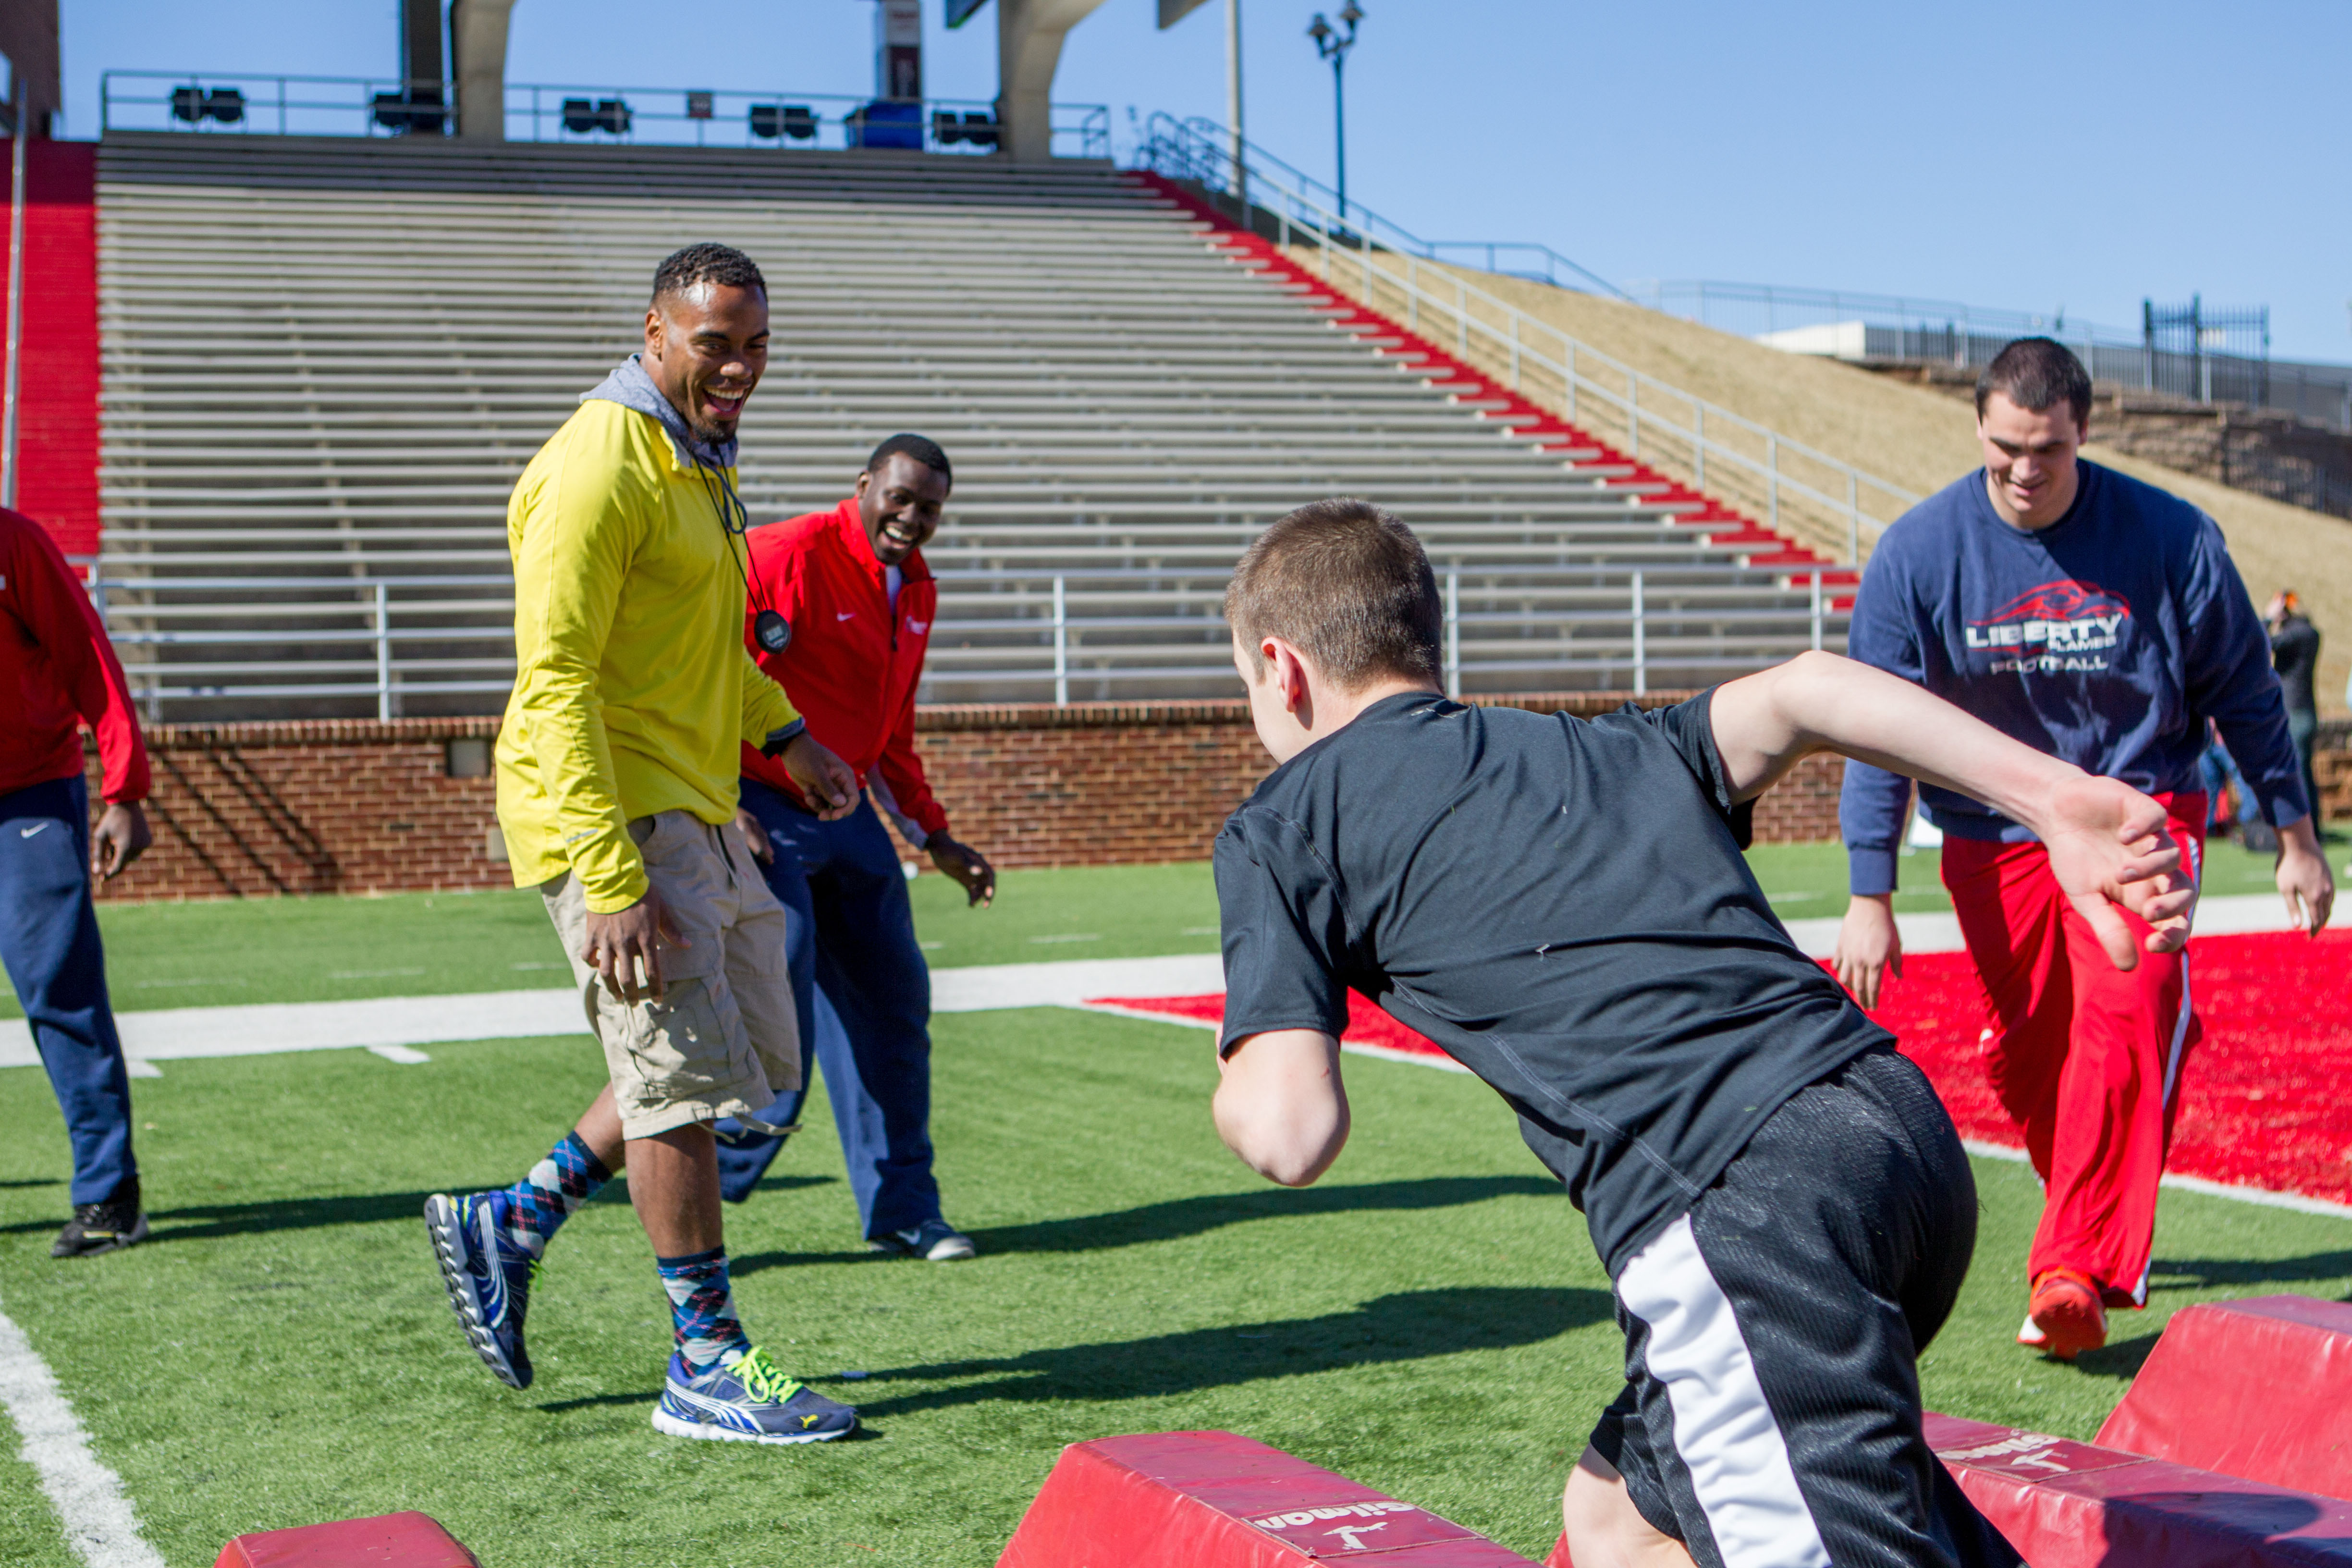 Rashad Jennings and Mike Brown hold a camp at Williams Stadium on February 22, 2013. (Photo by Kevin Manguiob)